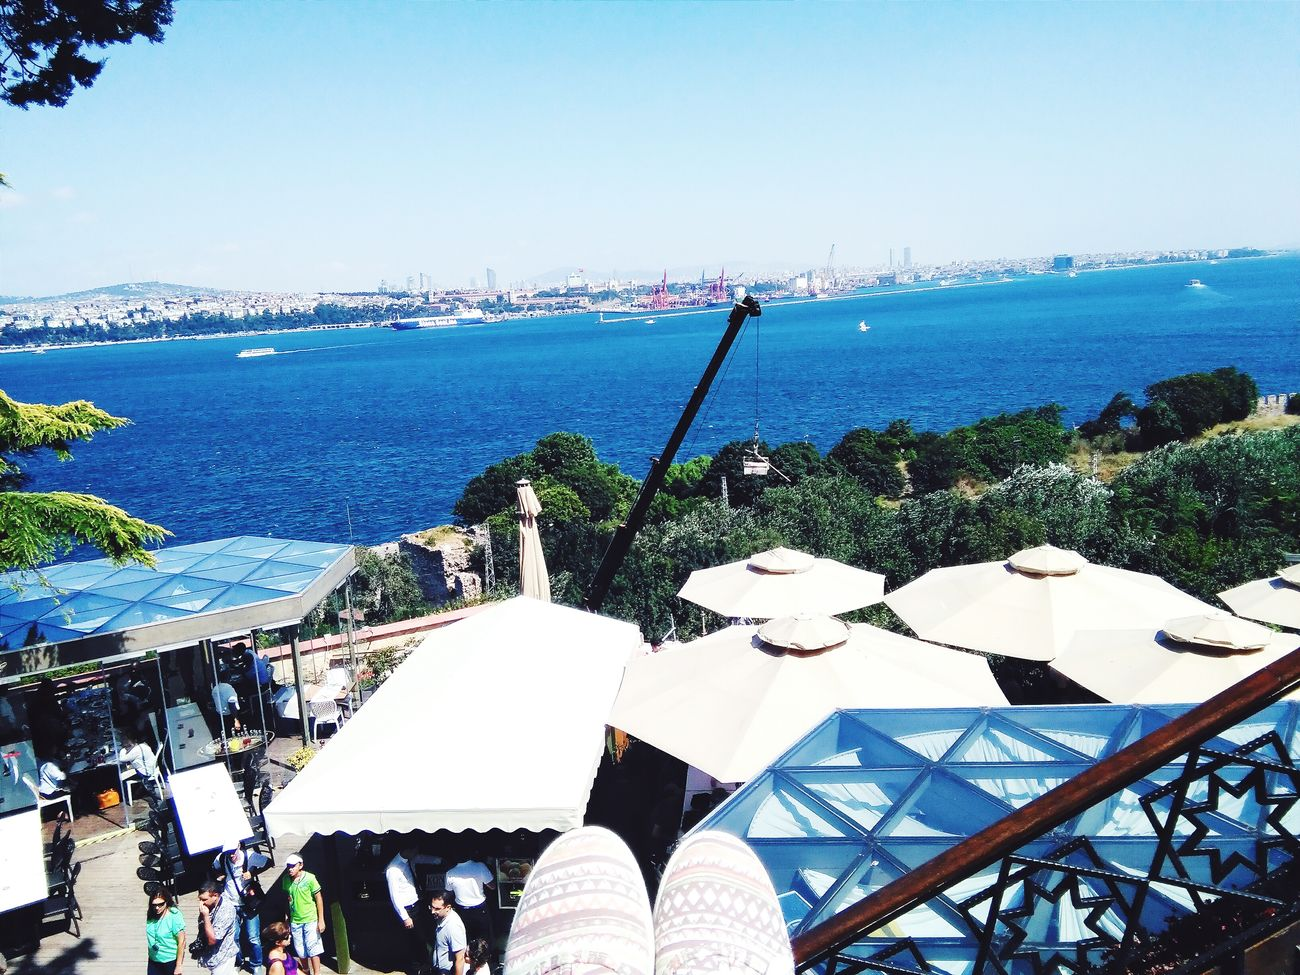 Check This Out The Great Outdoors With Adobe Tumblrgirl Istanbul Istanbul Turkey In Love With It